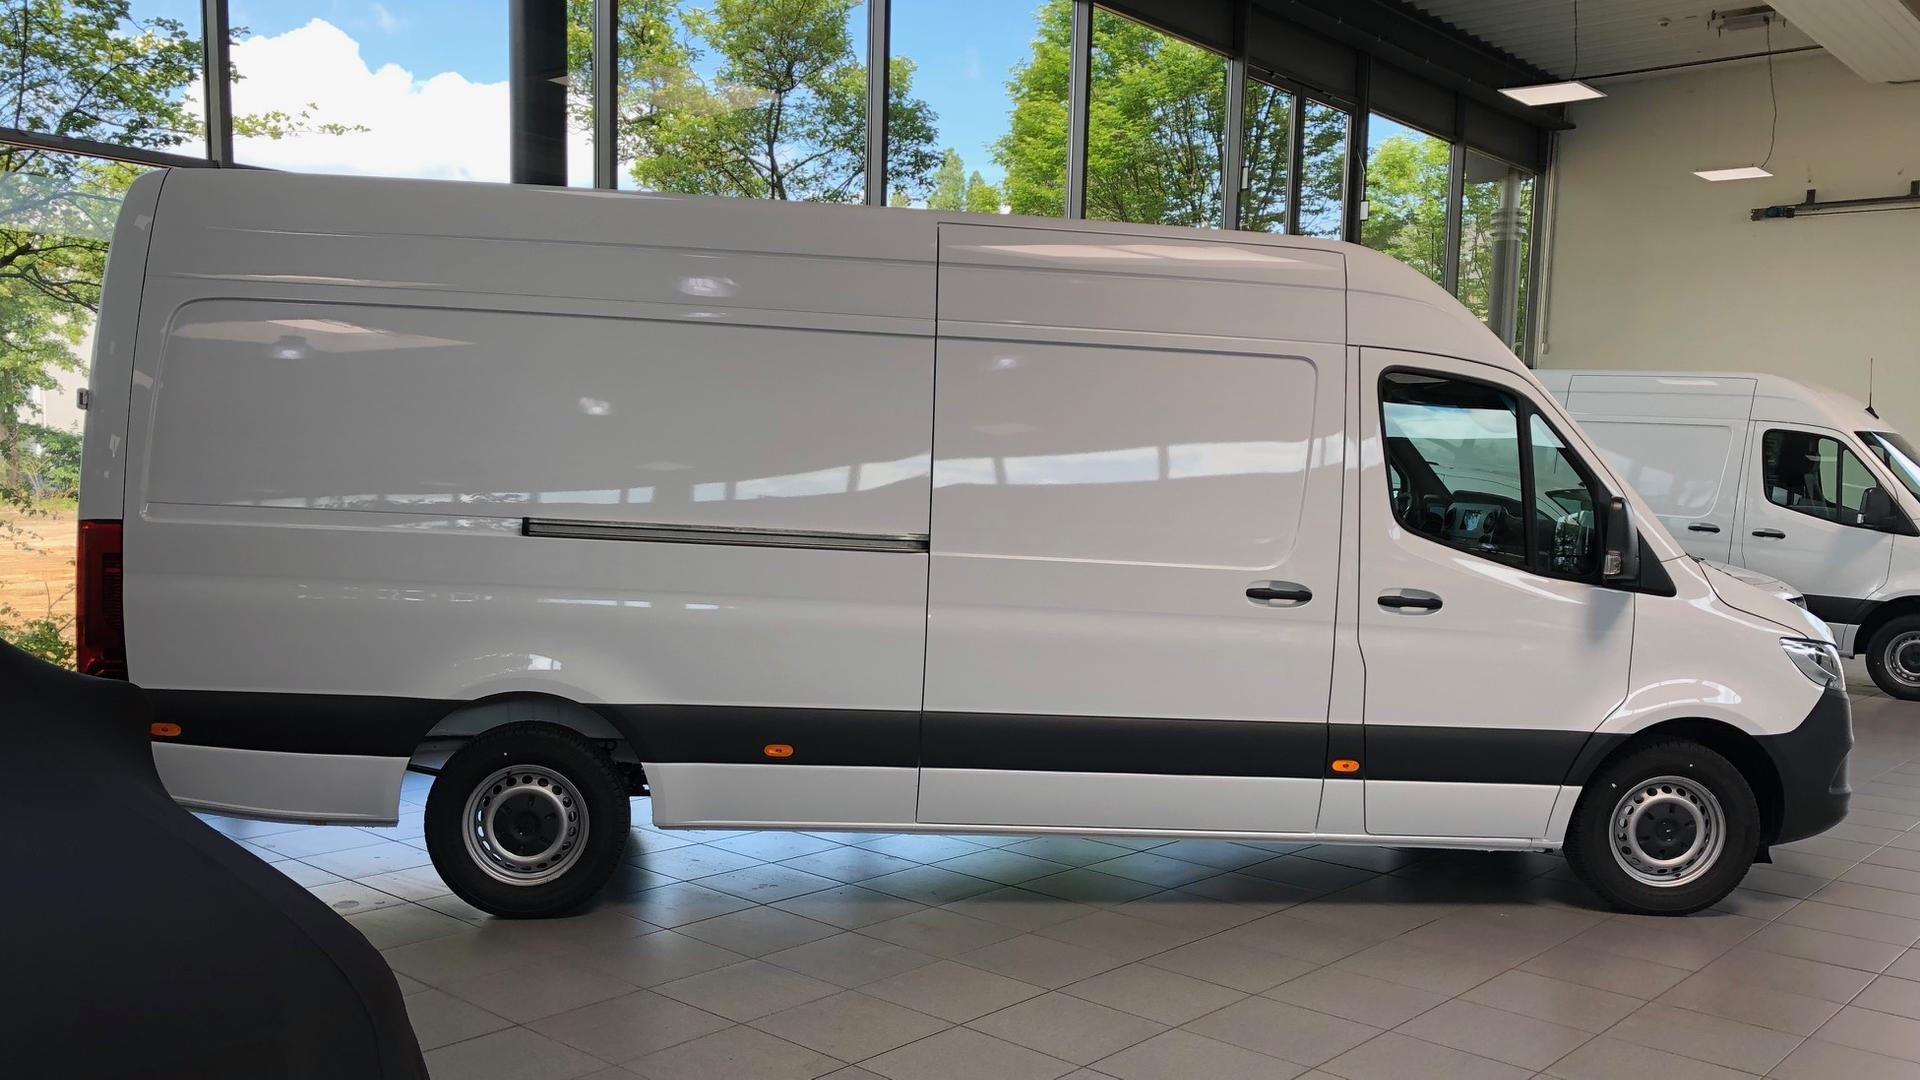 mercedes sprinter 3 5t inkl fahrer mieten 300 00 eur pro tag. Black Bedroom Furniture Sets. Home Design Ideas